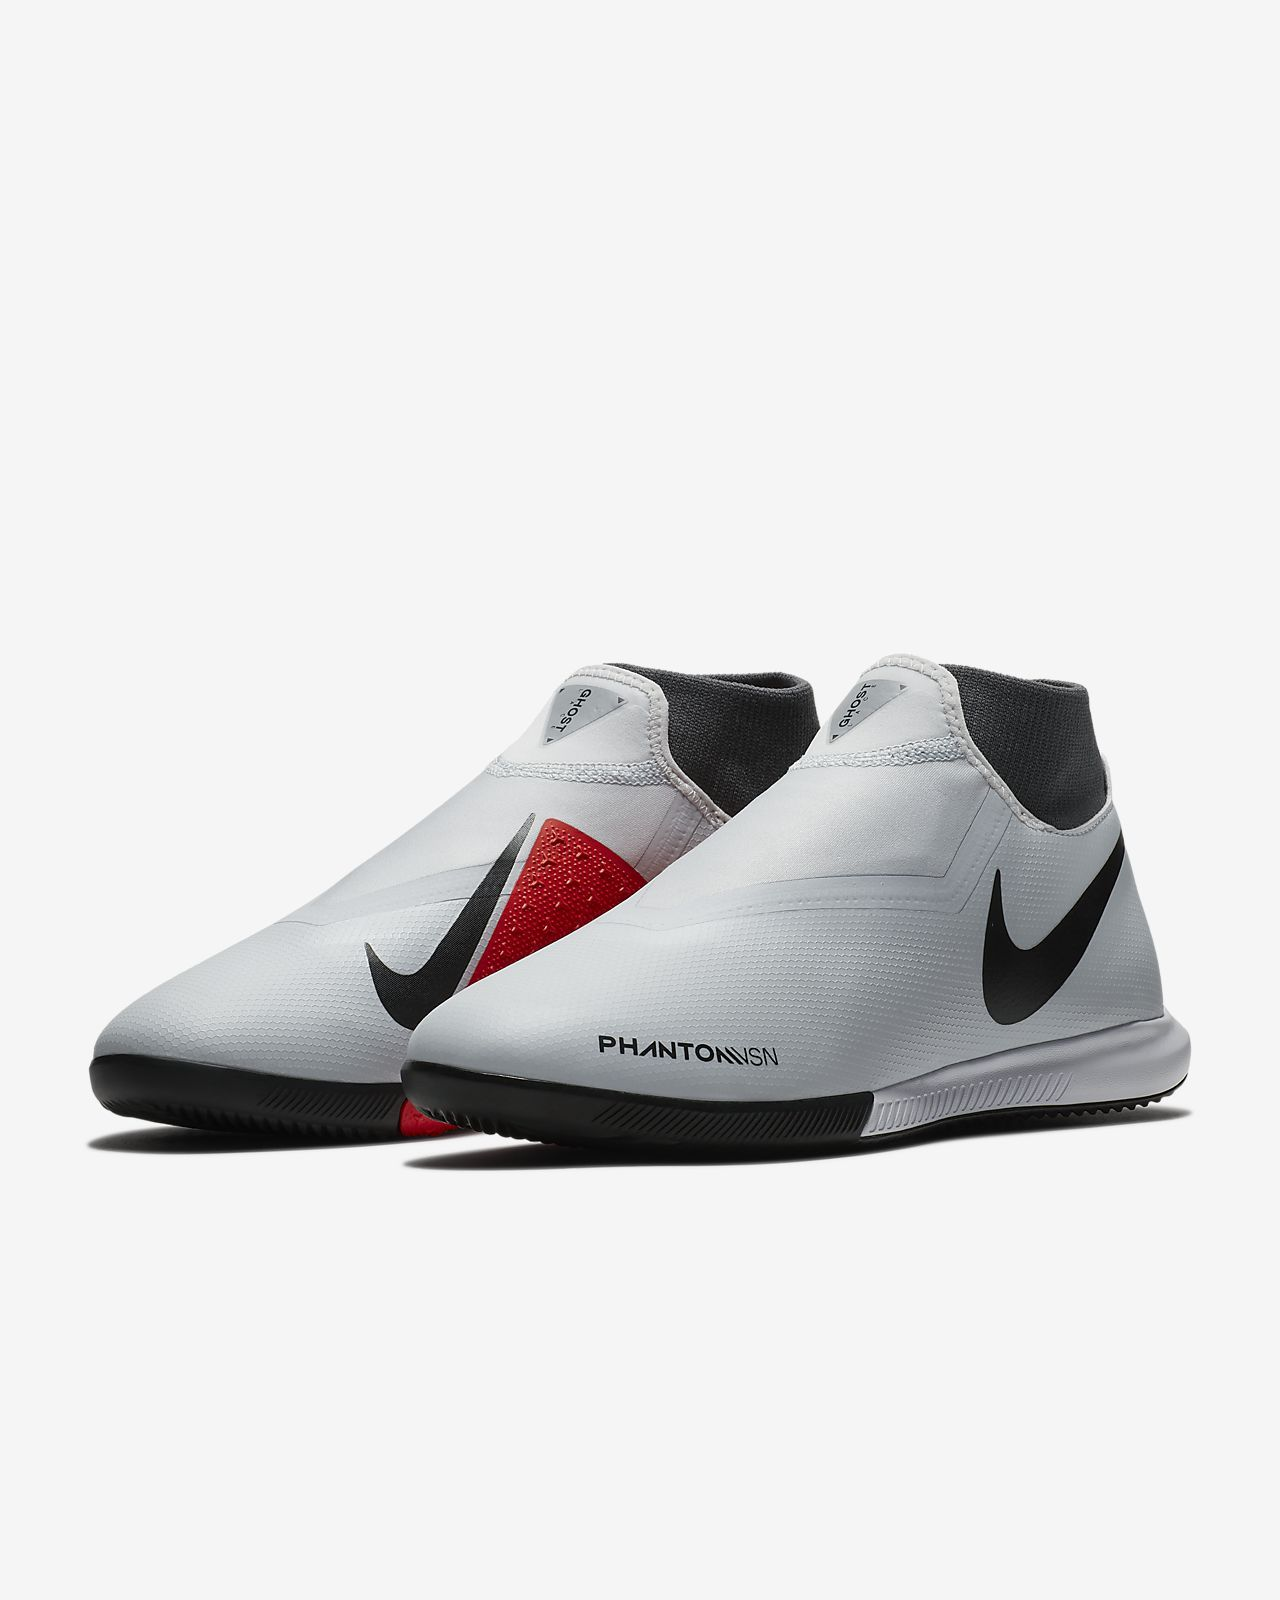 hot sale online dccea 53250 Nike Phantom Vision Academy Dynamic Fit IndoorCourt Soccer Shoe